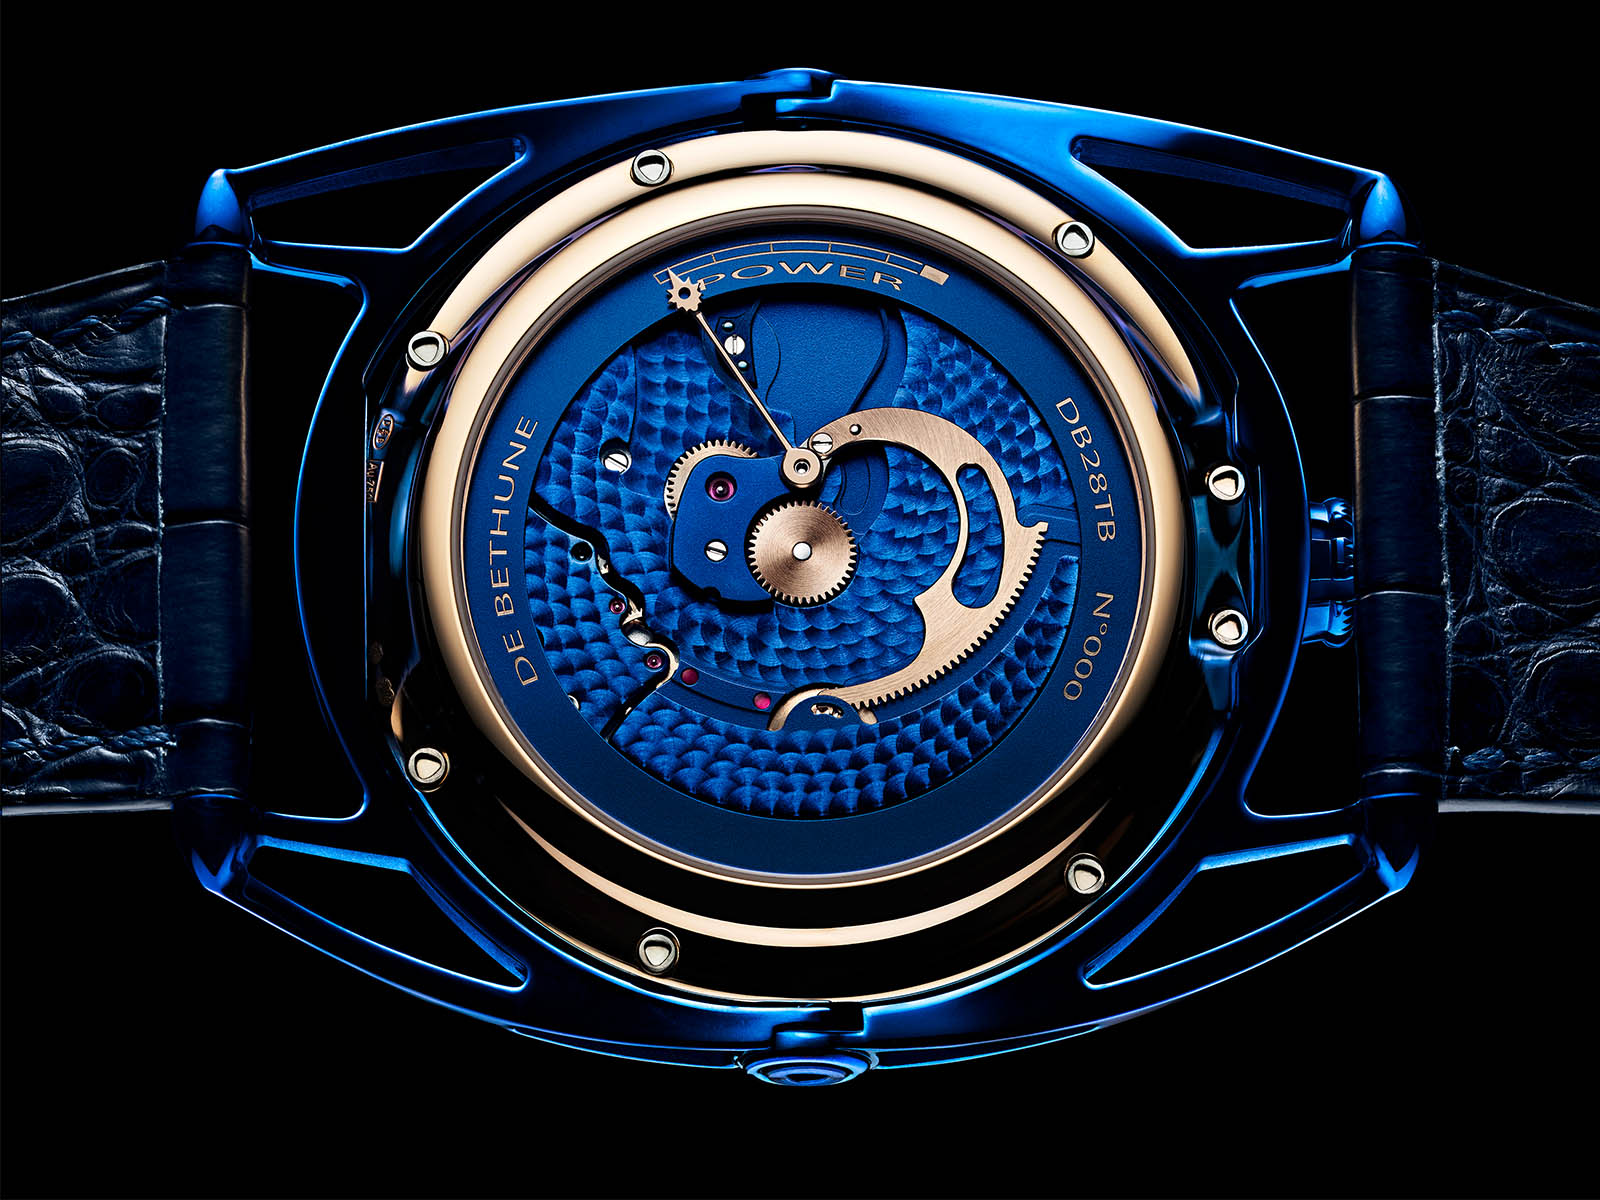 De-Bethhune-DB28-Kind-of-Blue-Tourbillon-Meteorite-5.jpg